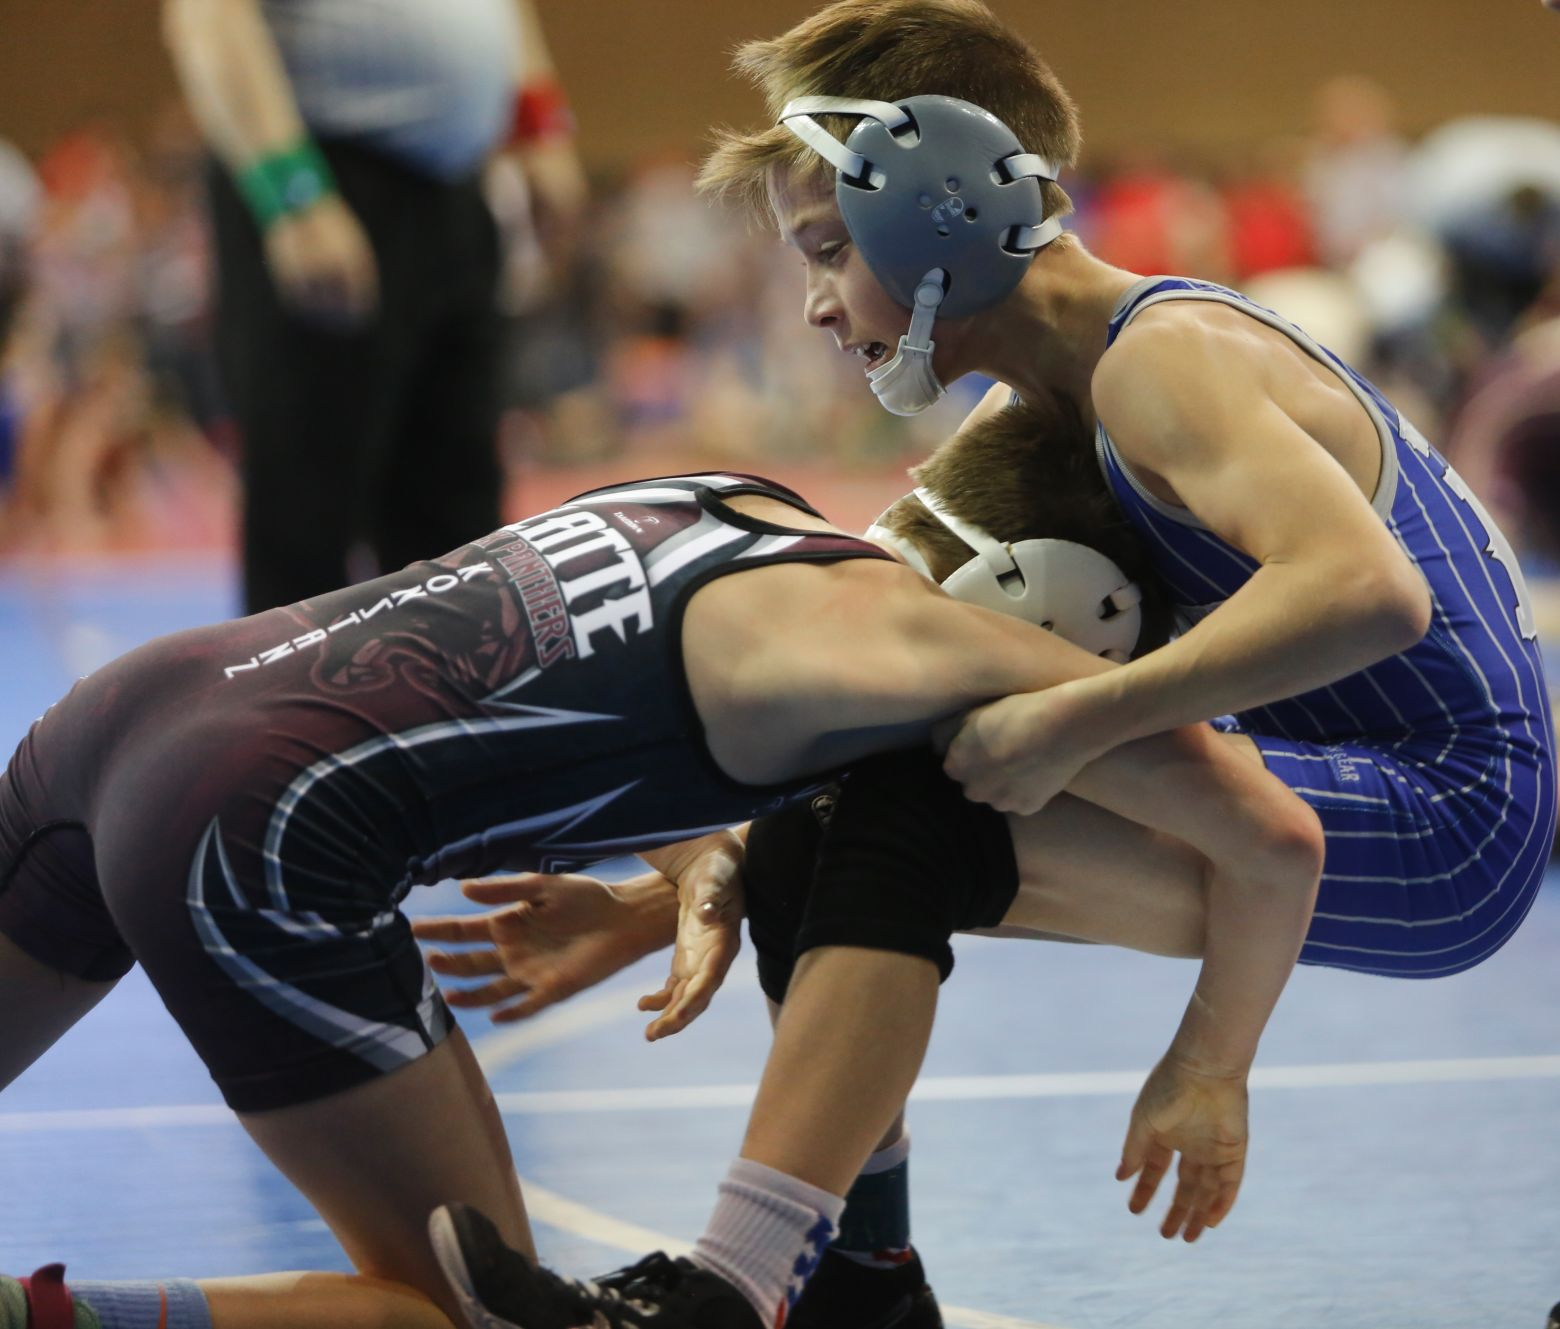 State AAU Tournament Crowns Champions On Day One